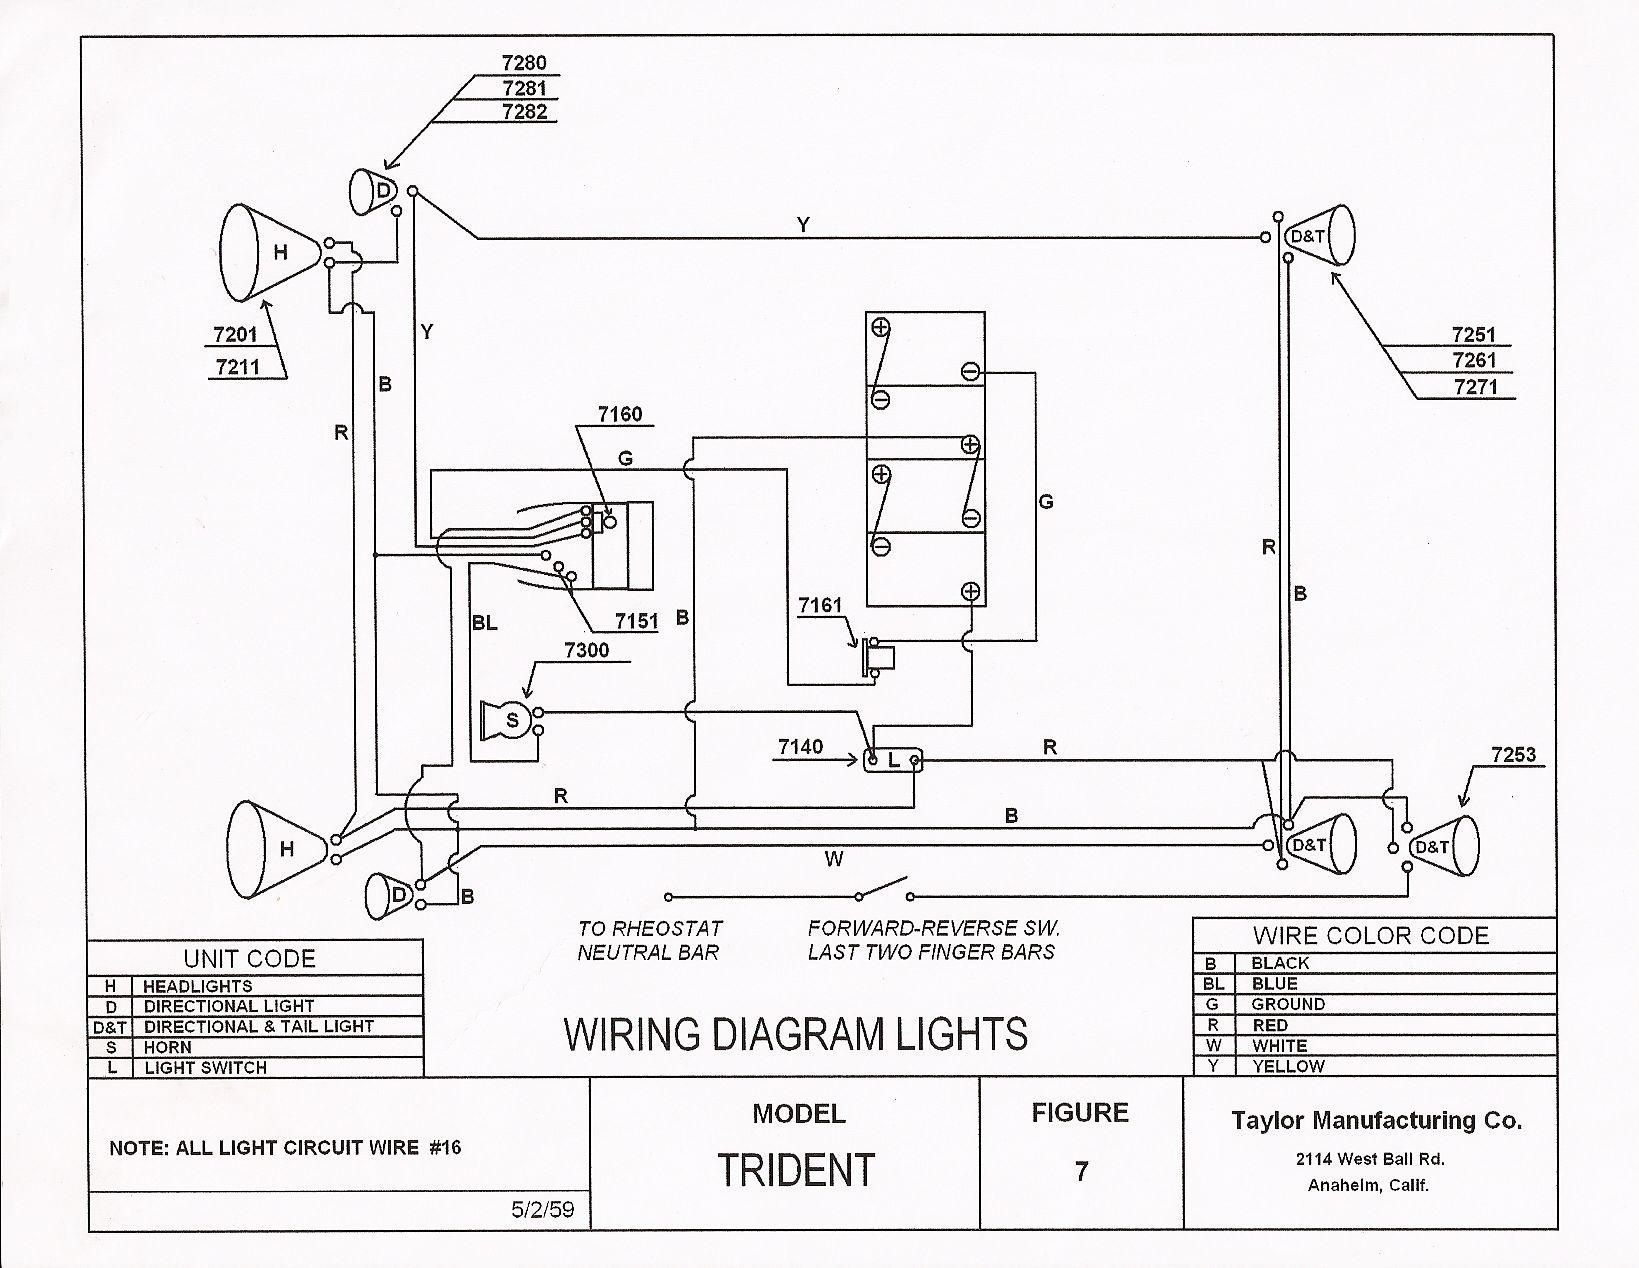 small resolution of taylor fork lift wiring diagram free download wiring diagram taylor forklift wiring diagram taylor wiring diagram